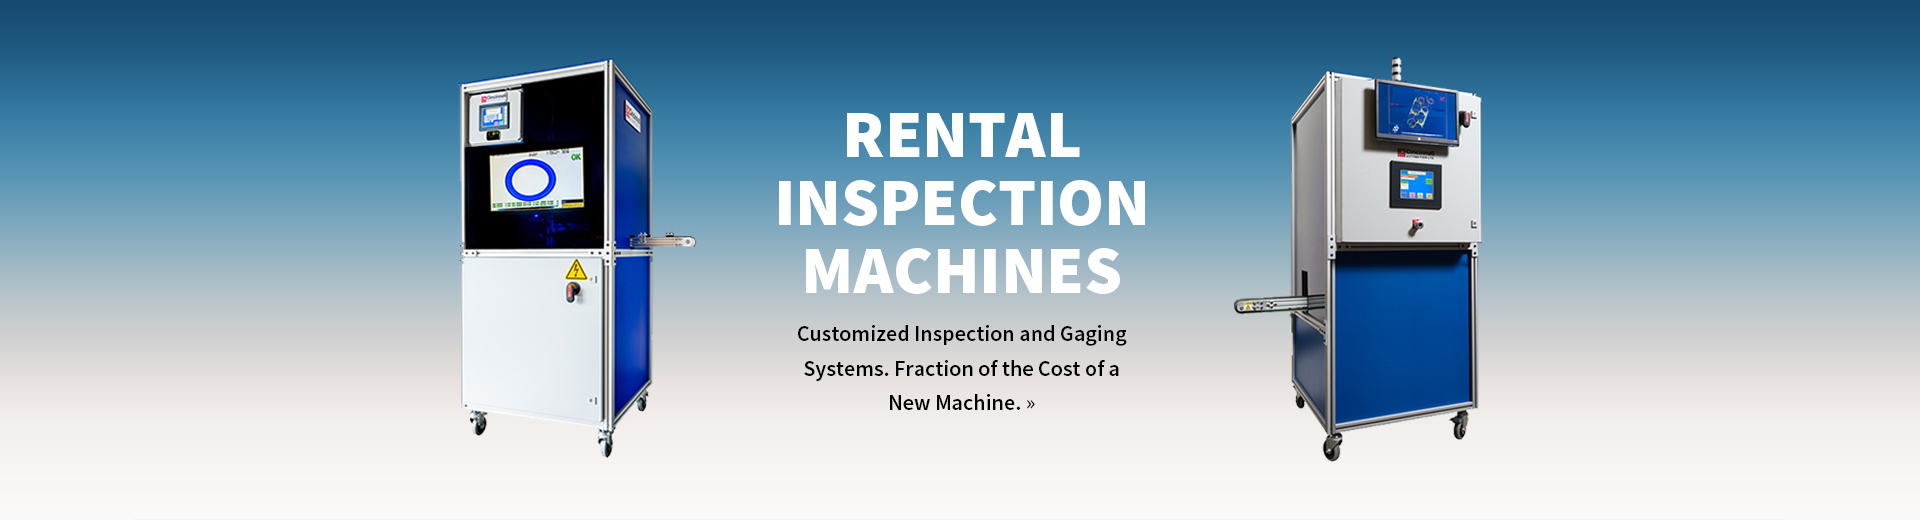 Rental Inspection Machines